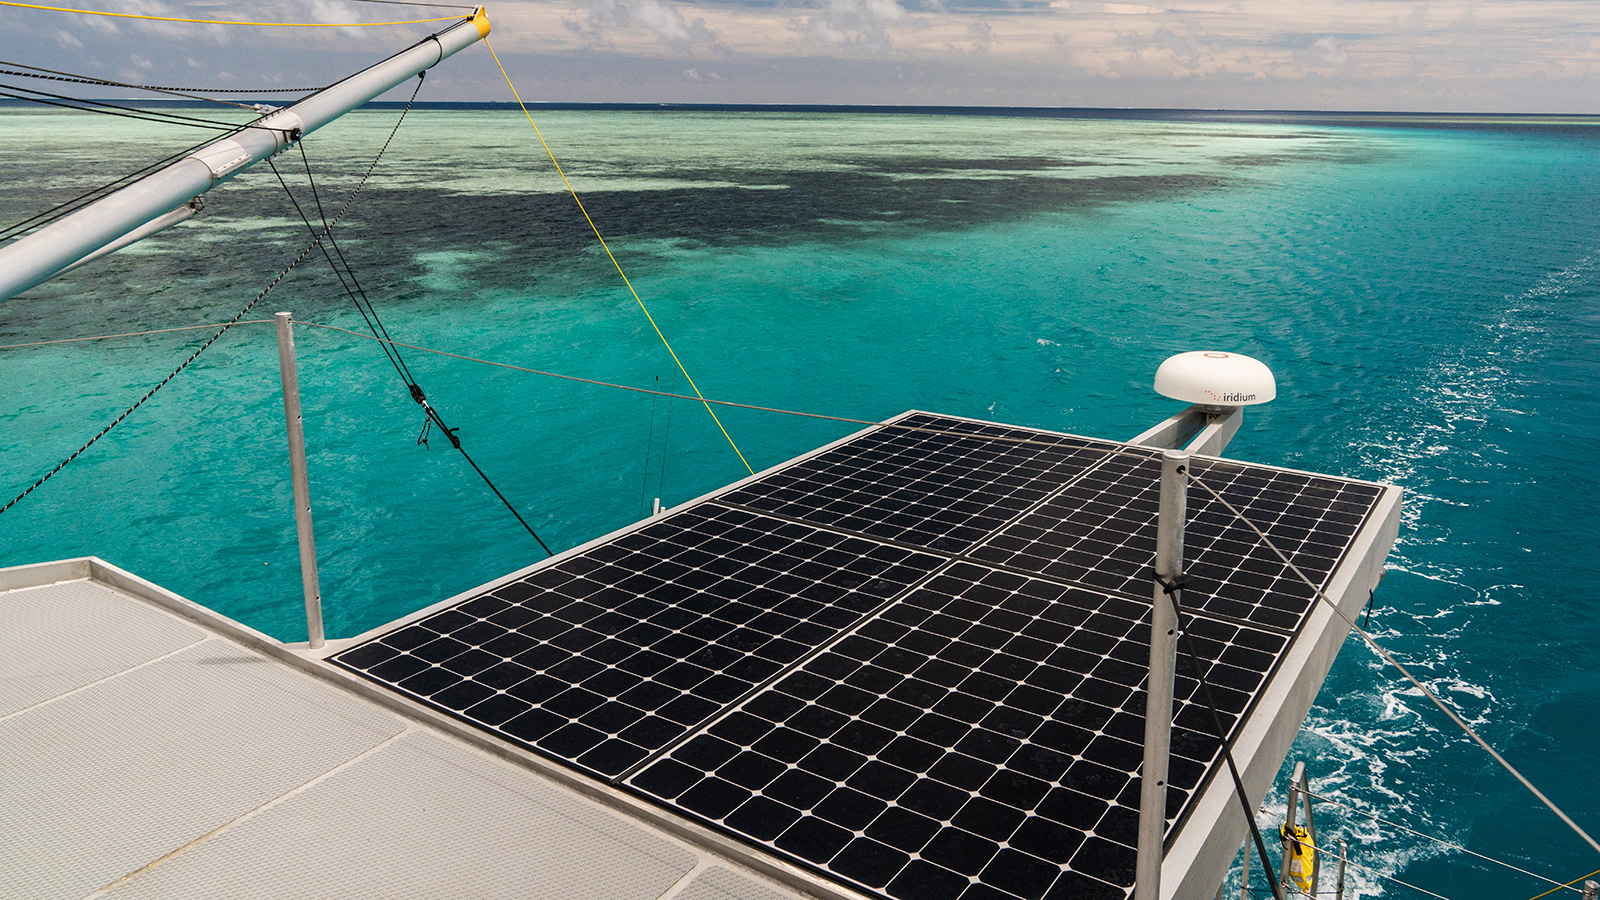 solar-panels-on-the-fpb-78-explorer-yacht-cochise-credit-steve-dashew